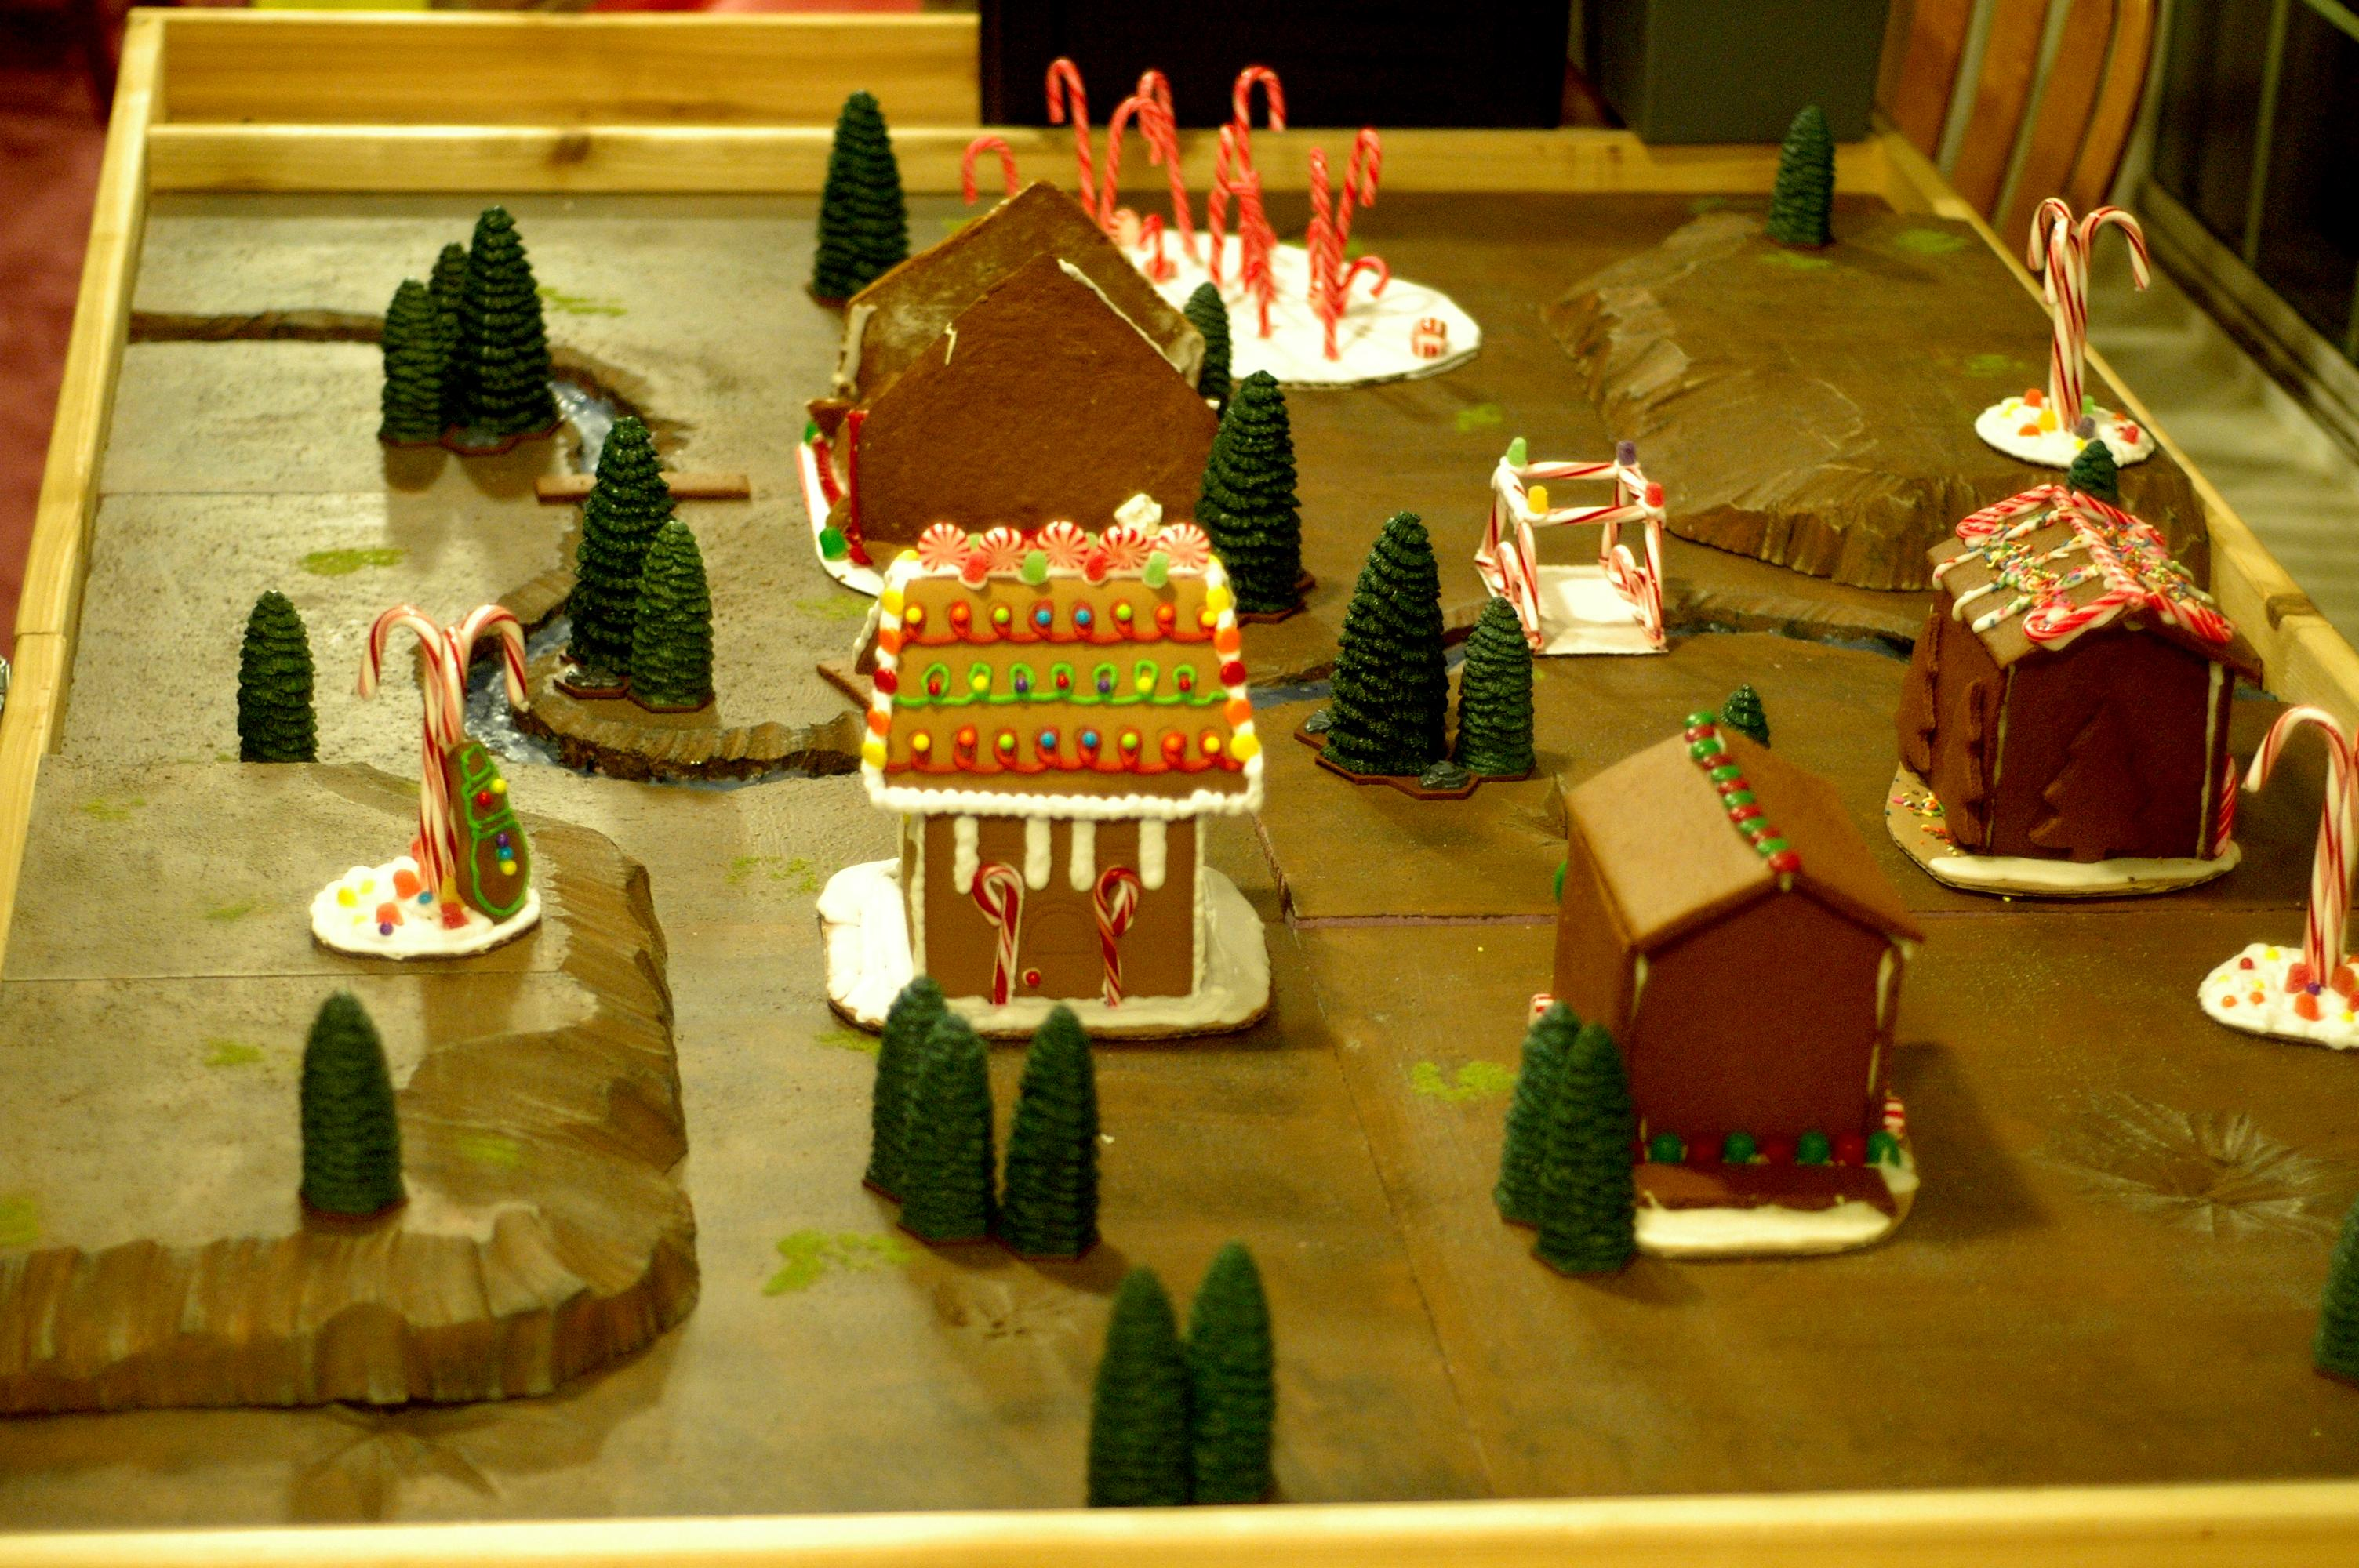 Battle Report, Board, Buildings, Christmas, Game Table, Nom Nom Nom, Terrain